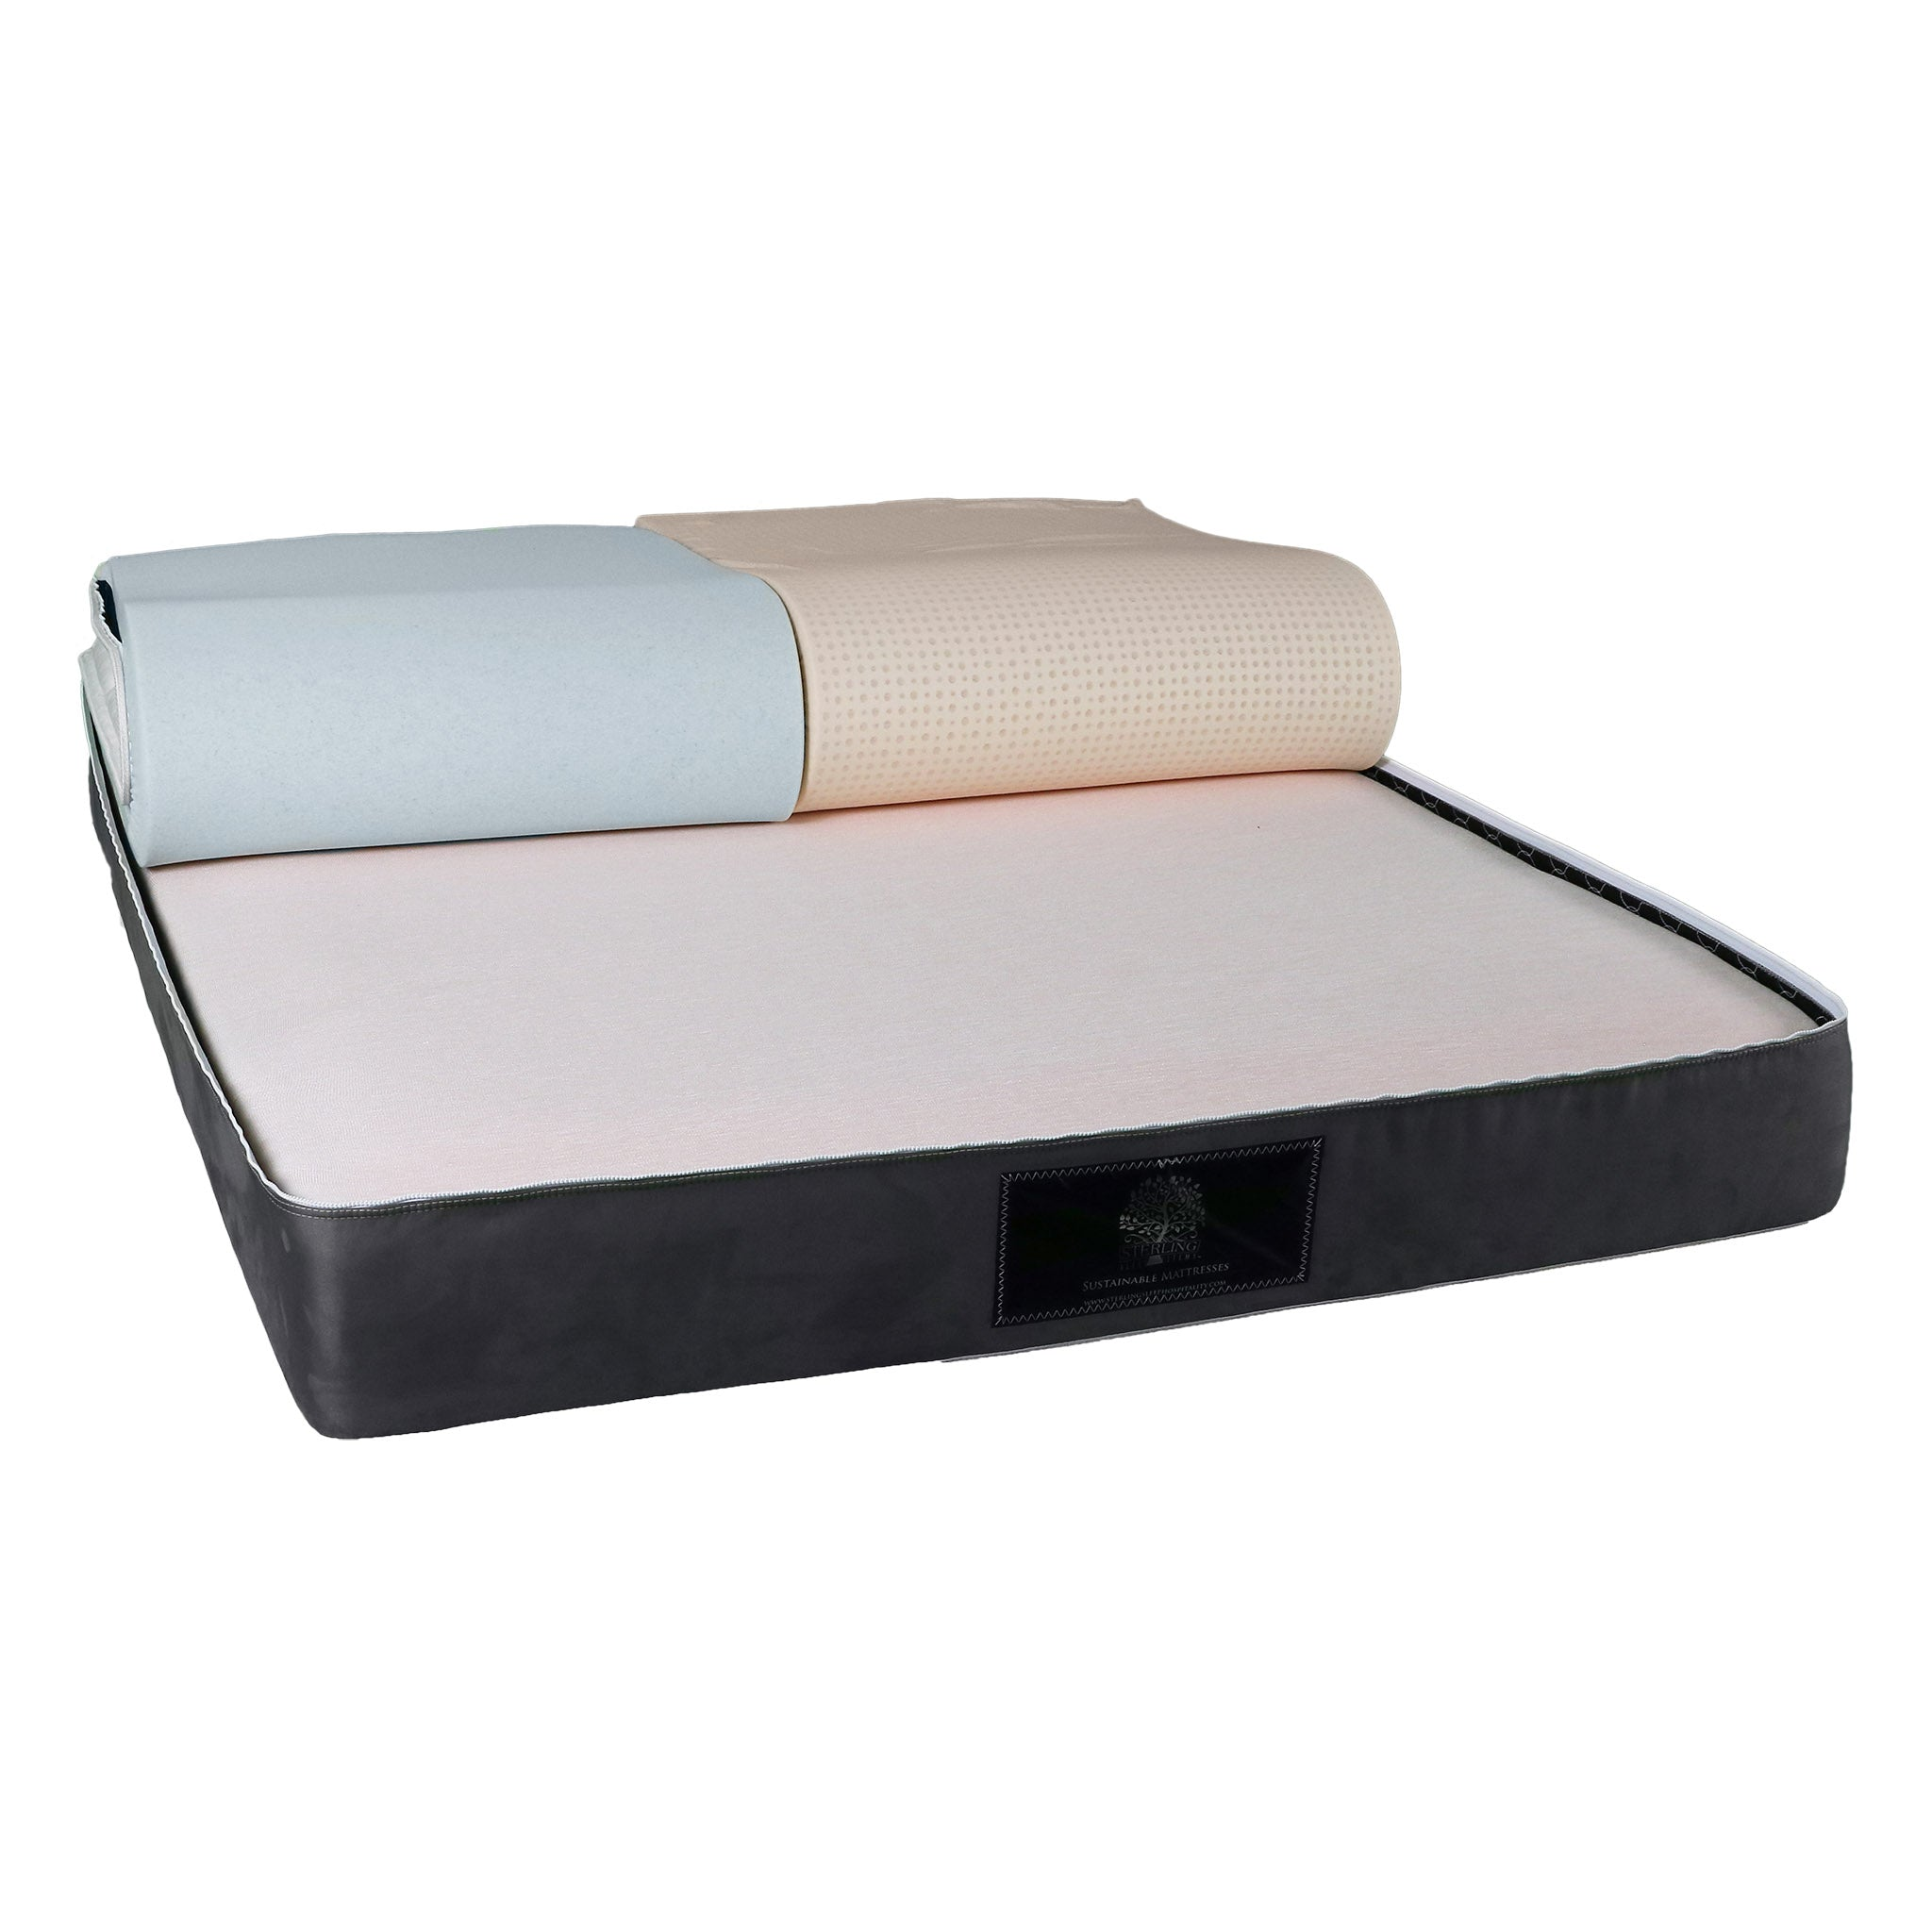 Imperial 650/655 Mattress - Sterling Sleep Systems